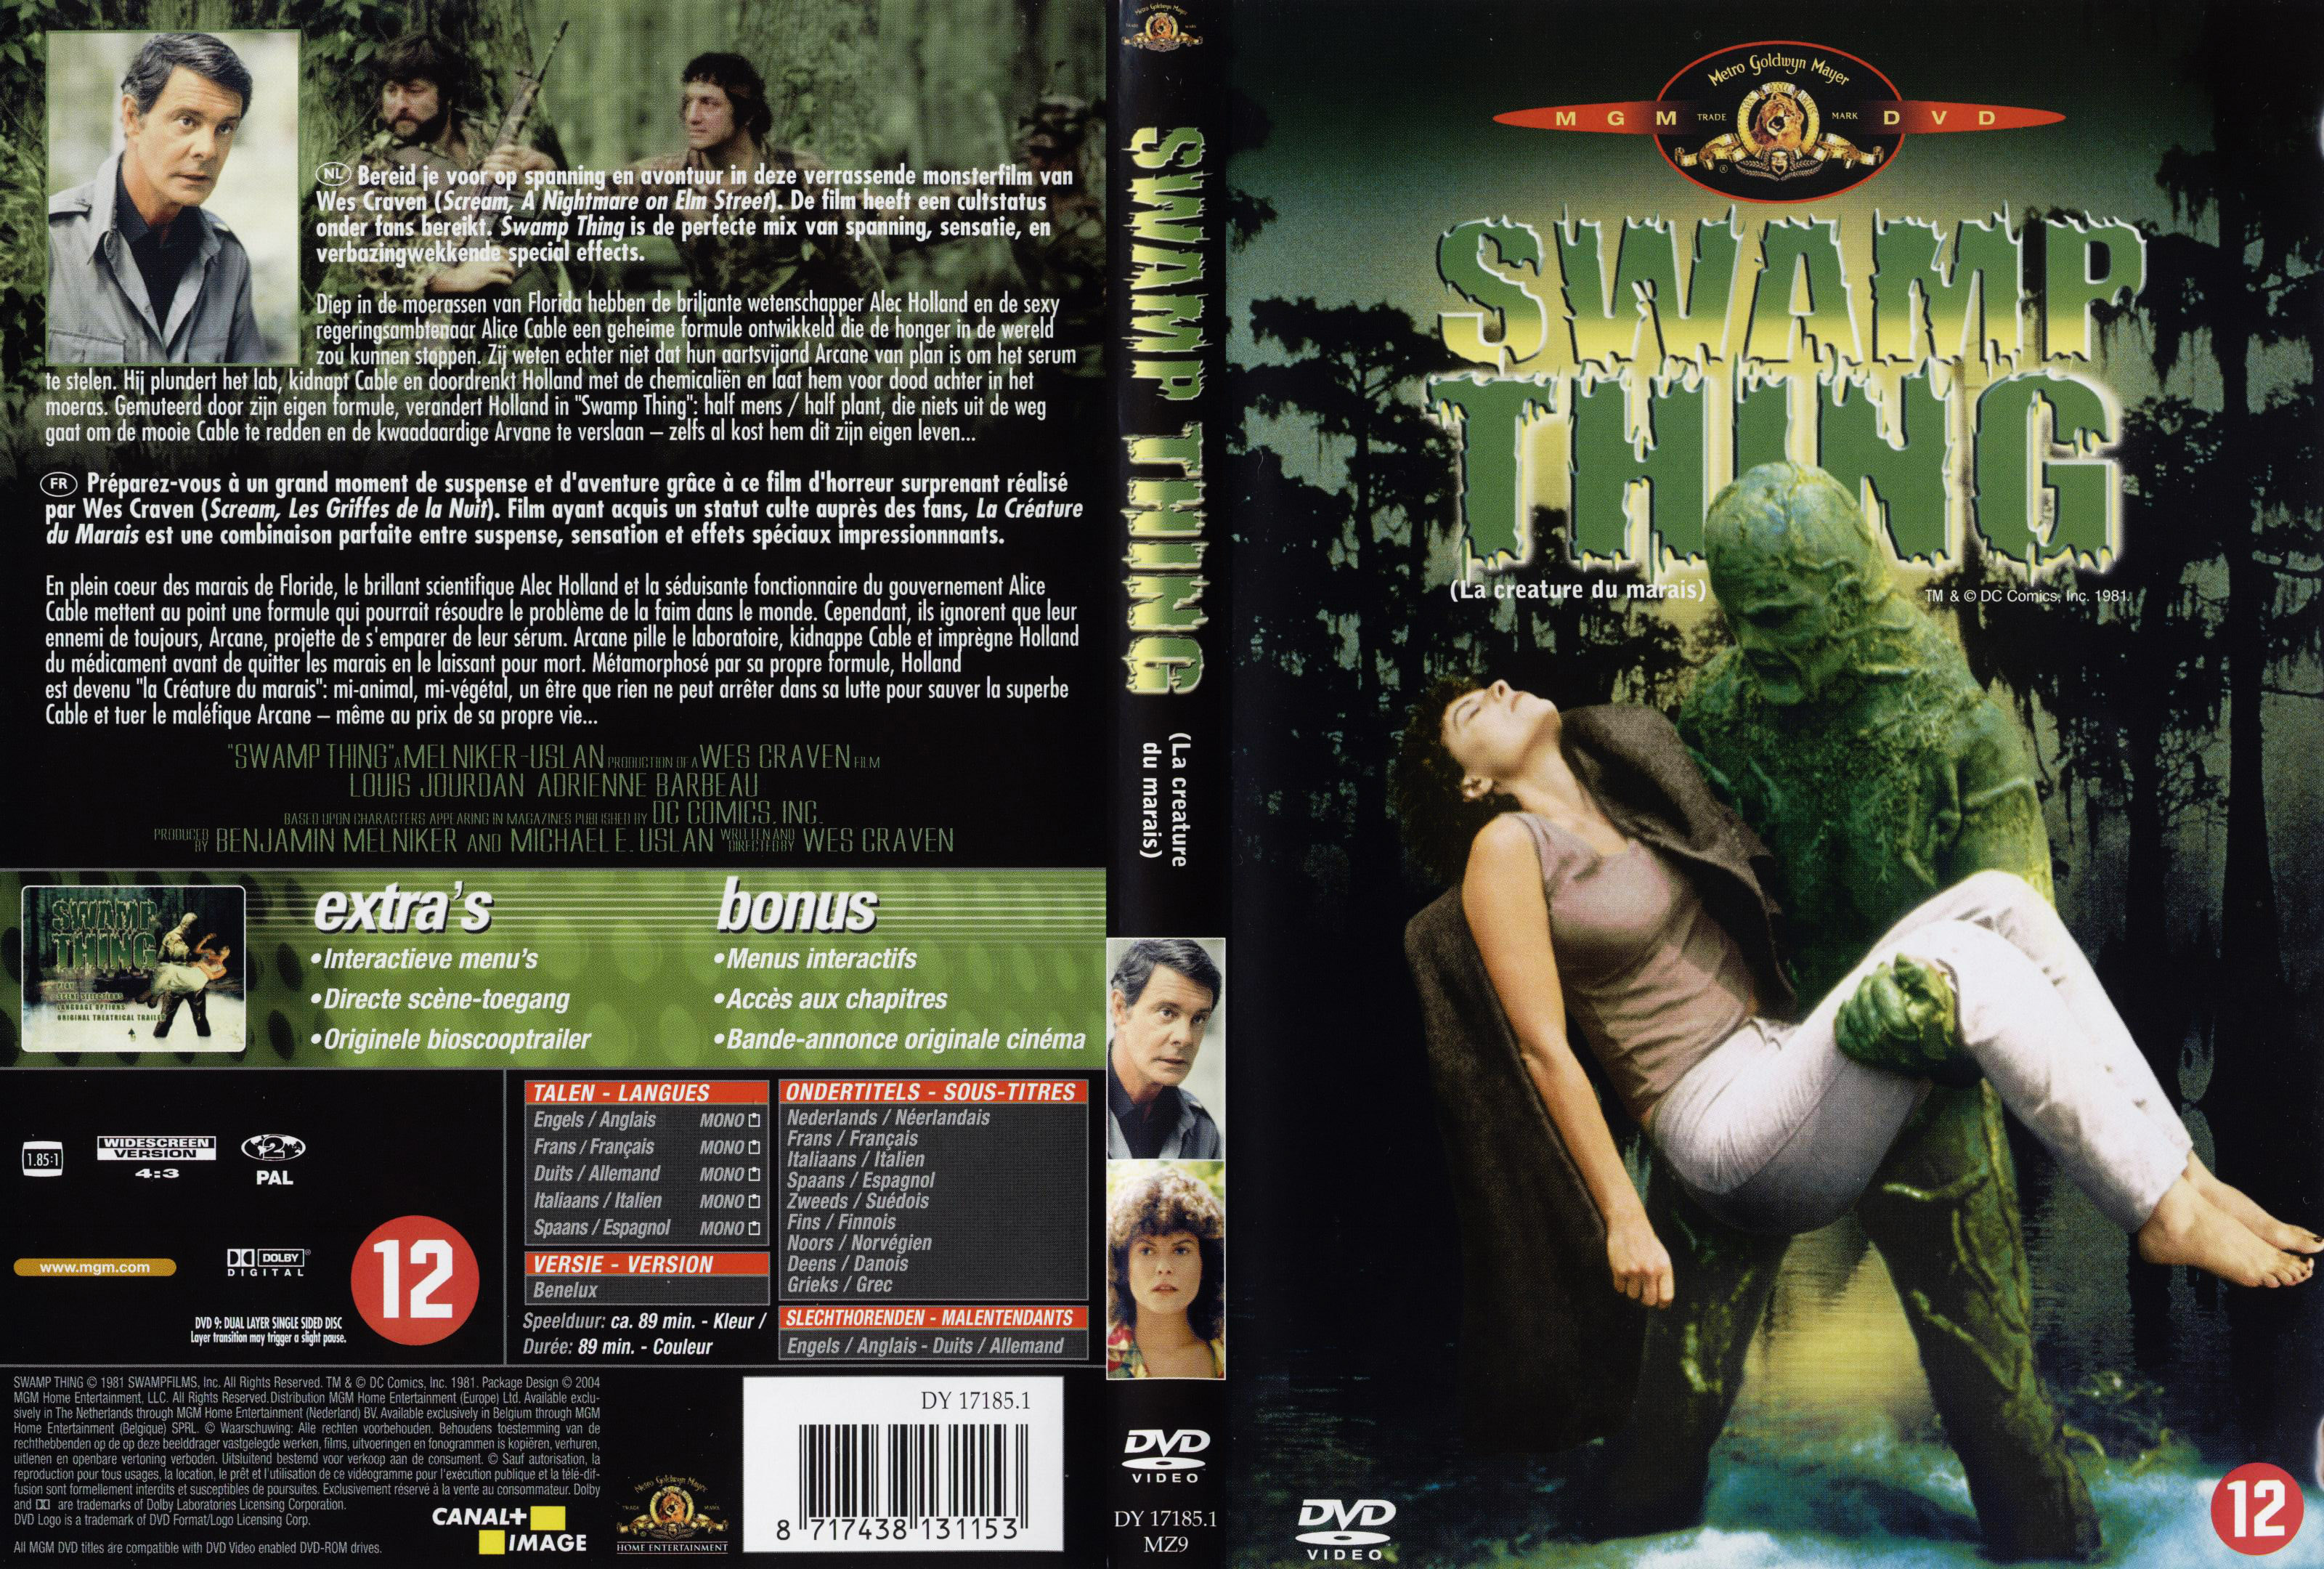 Harry Manfredini - Swamp Thing (Original Motion Picture Soundtrack)